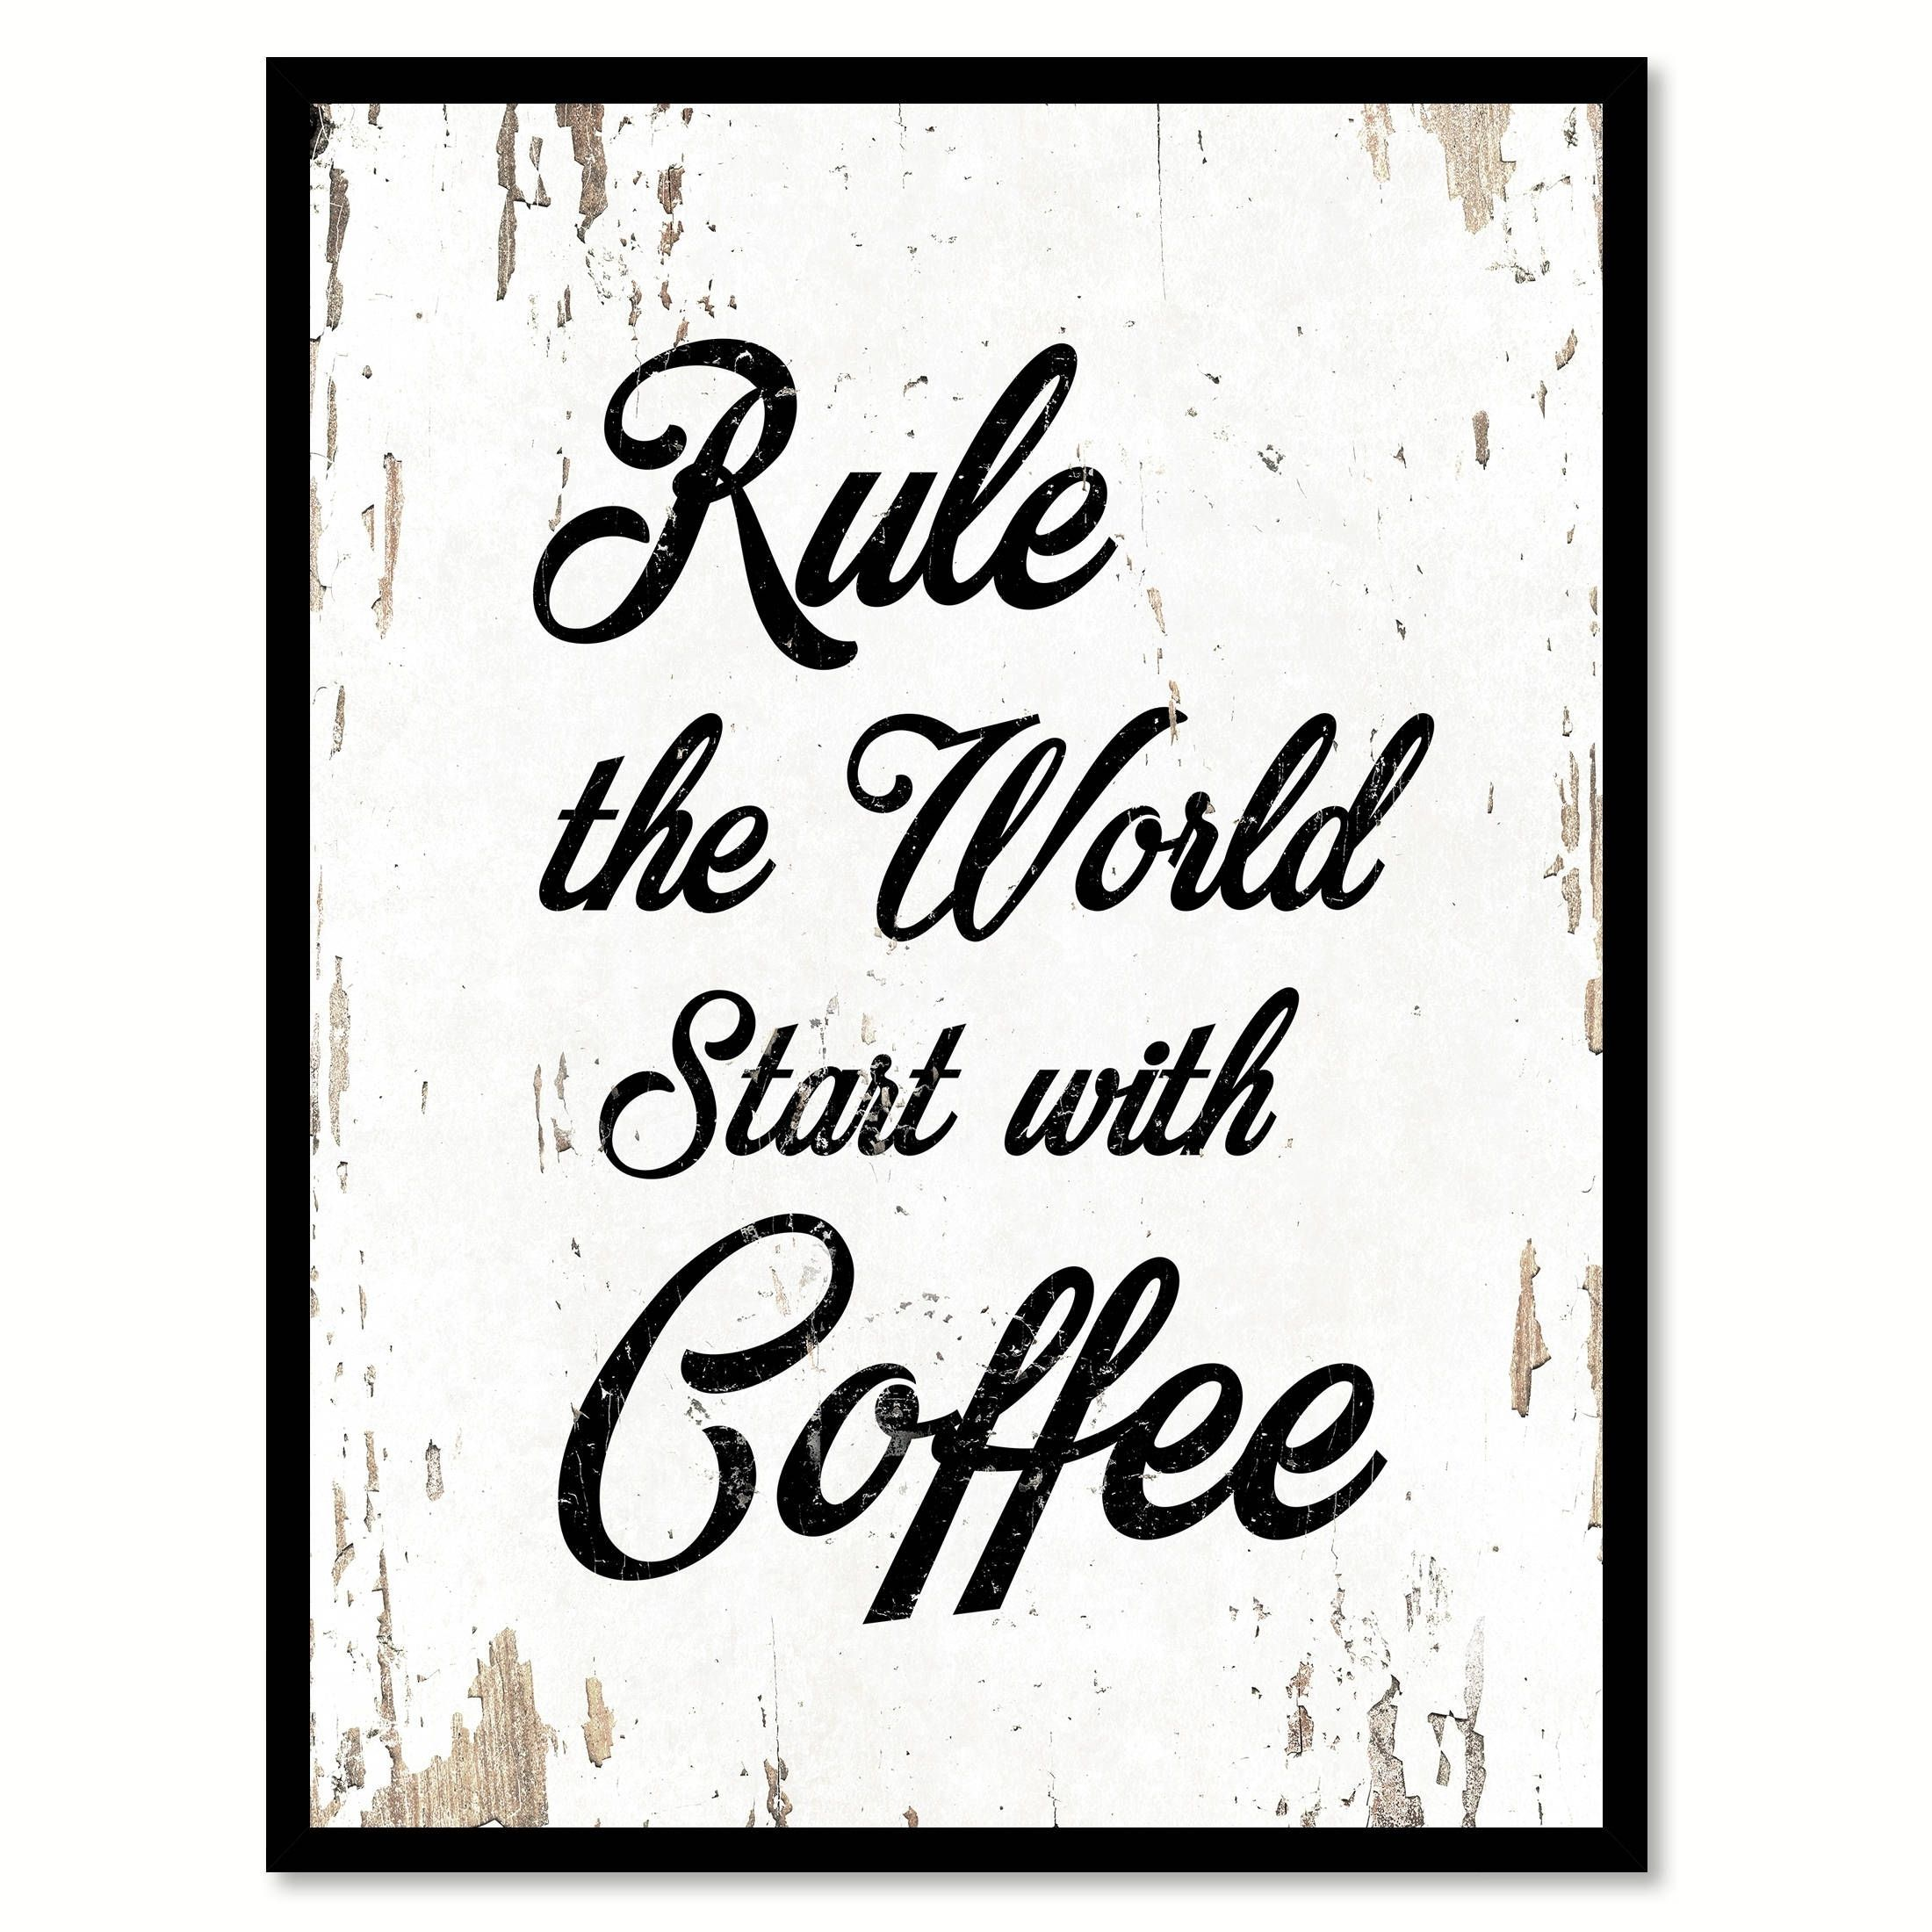 Rule the world start with coffee quote saying canvas print picture rule the world start with coffee quote saying canvas print picture frame jeuxipadfo Gallery